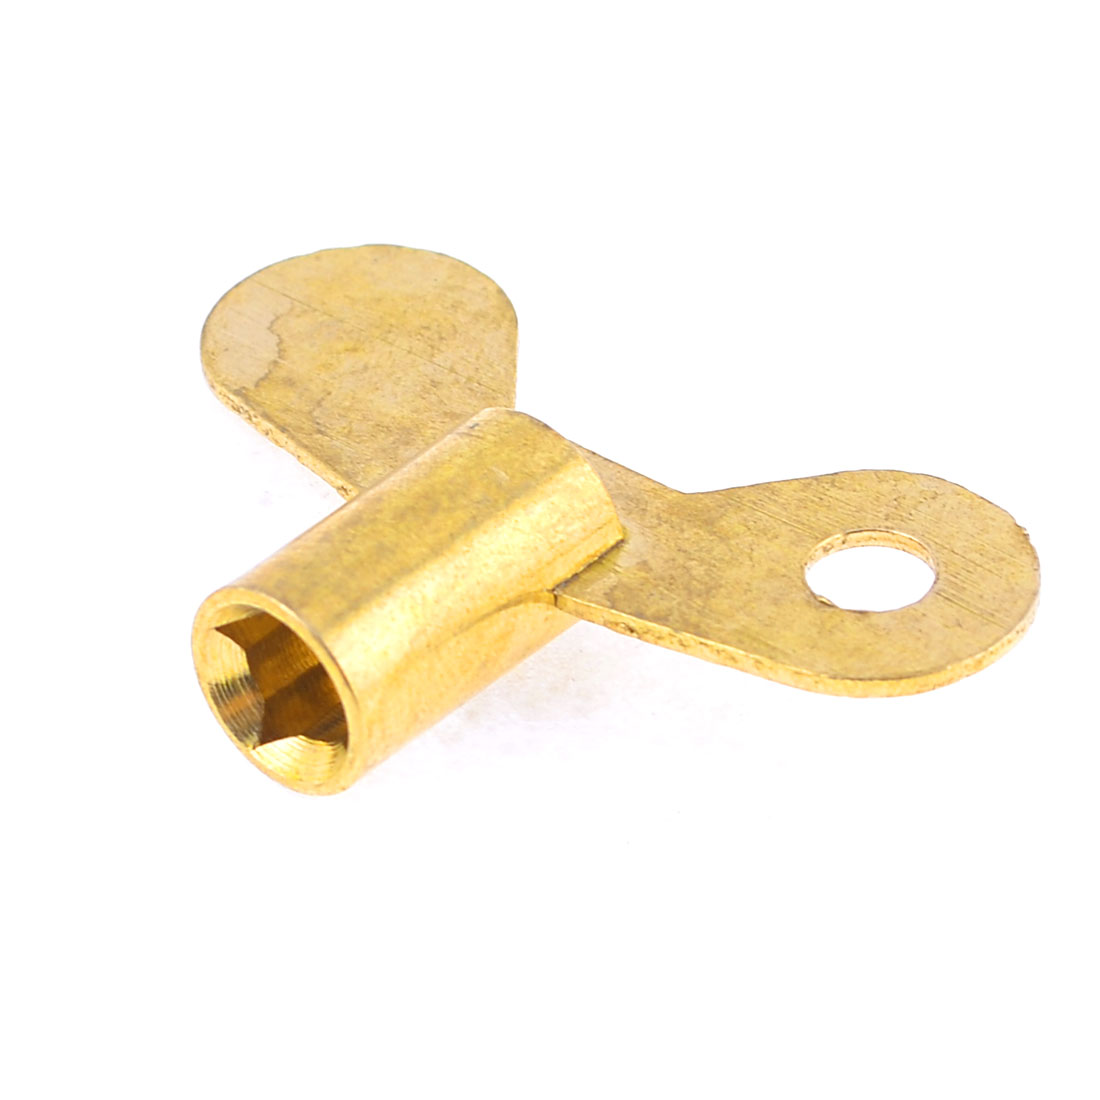 Water Tap Faucet 6.6mm Square Hole Key Knob Switch Gold Tone